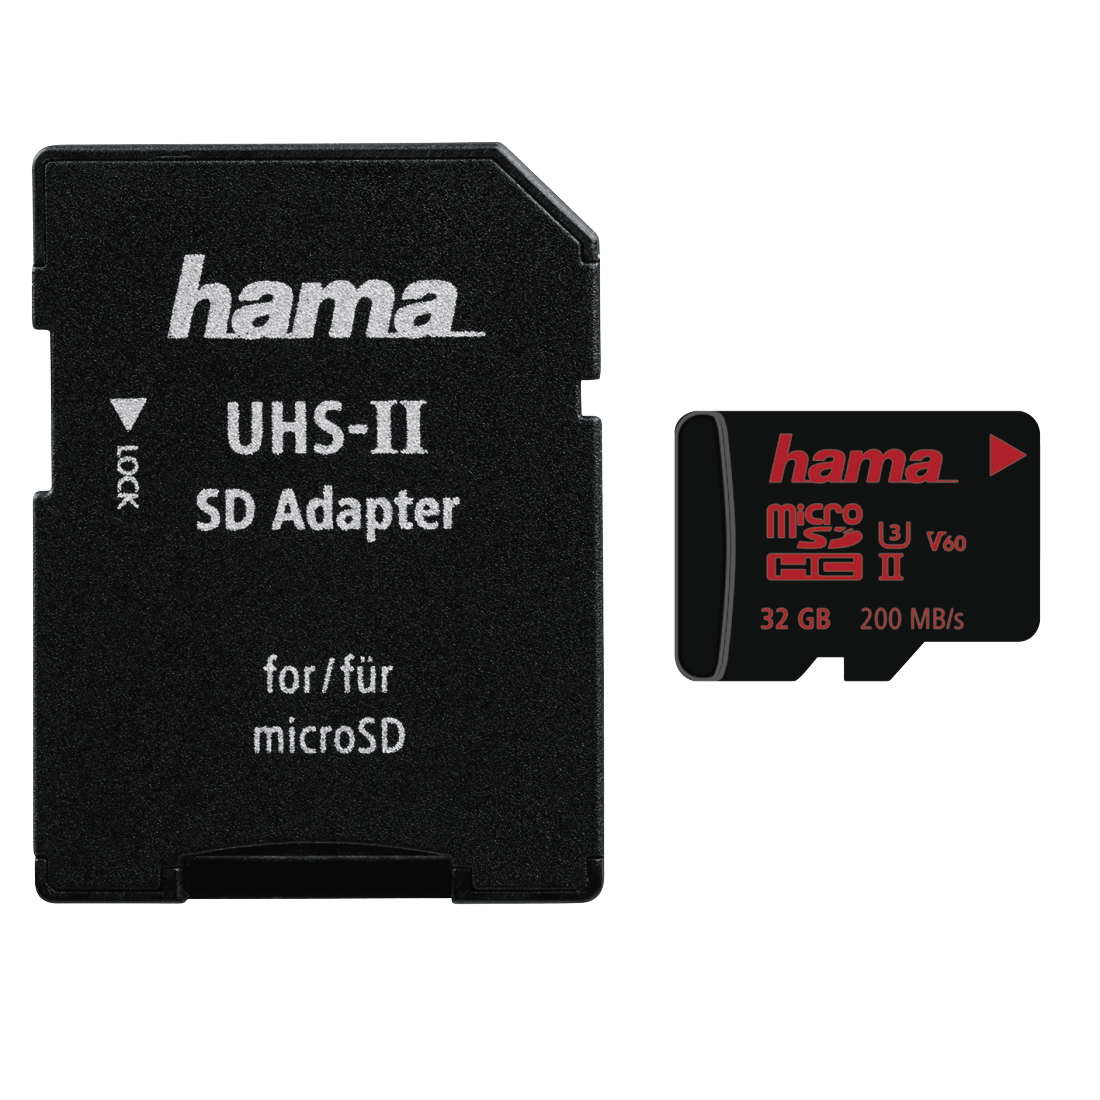 abx High-Res Image - Hama, microSDHC 32GB UHS Speed Class 3 UHS-II 200MB/s + Adapter/Mobile